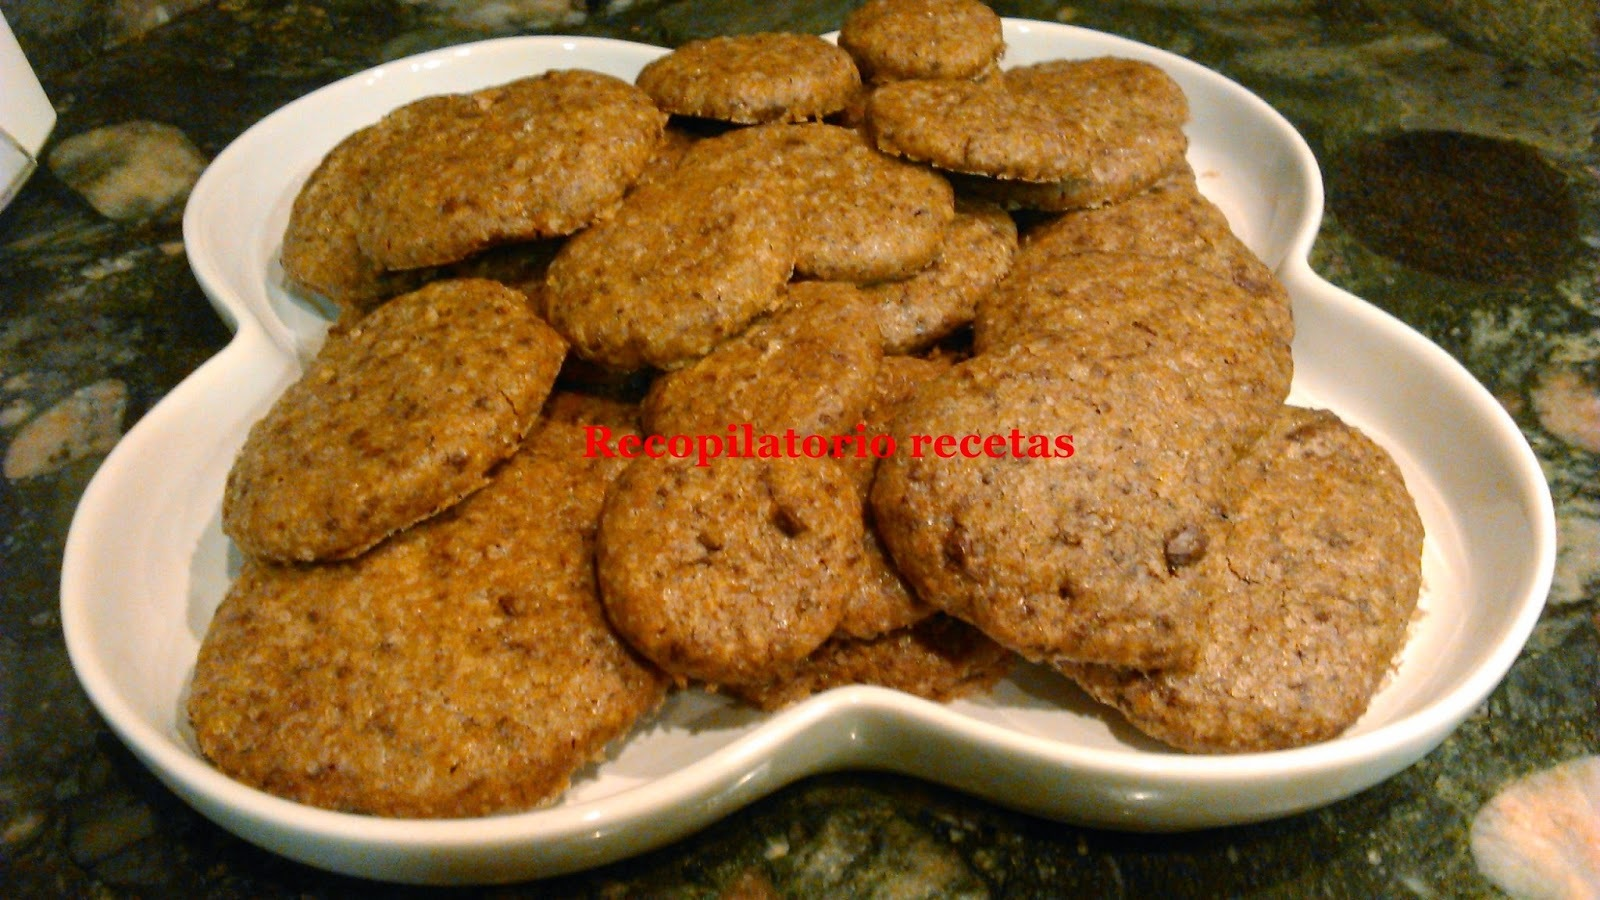 Galletas con pepitas de chocolate (Cookies) con thermomix